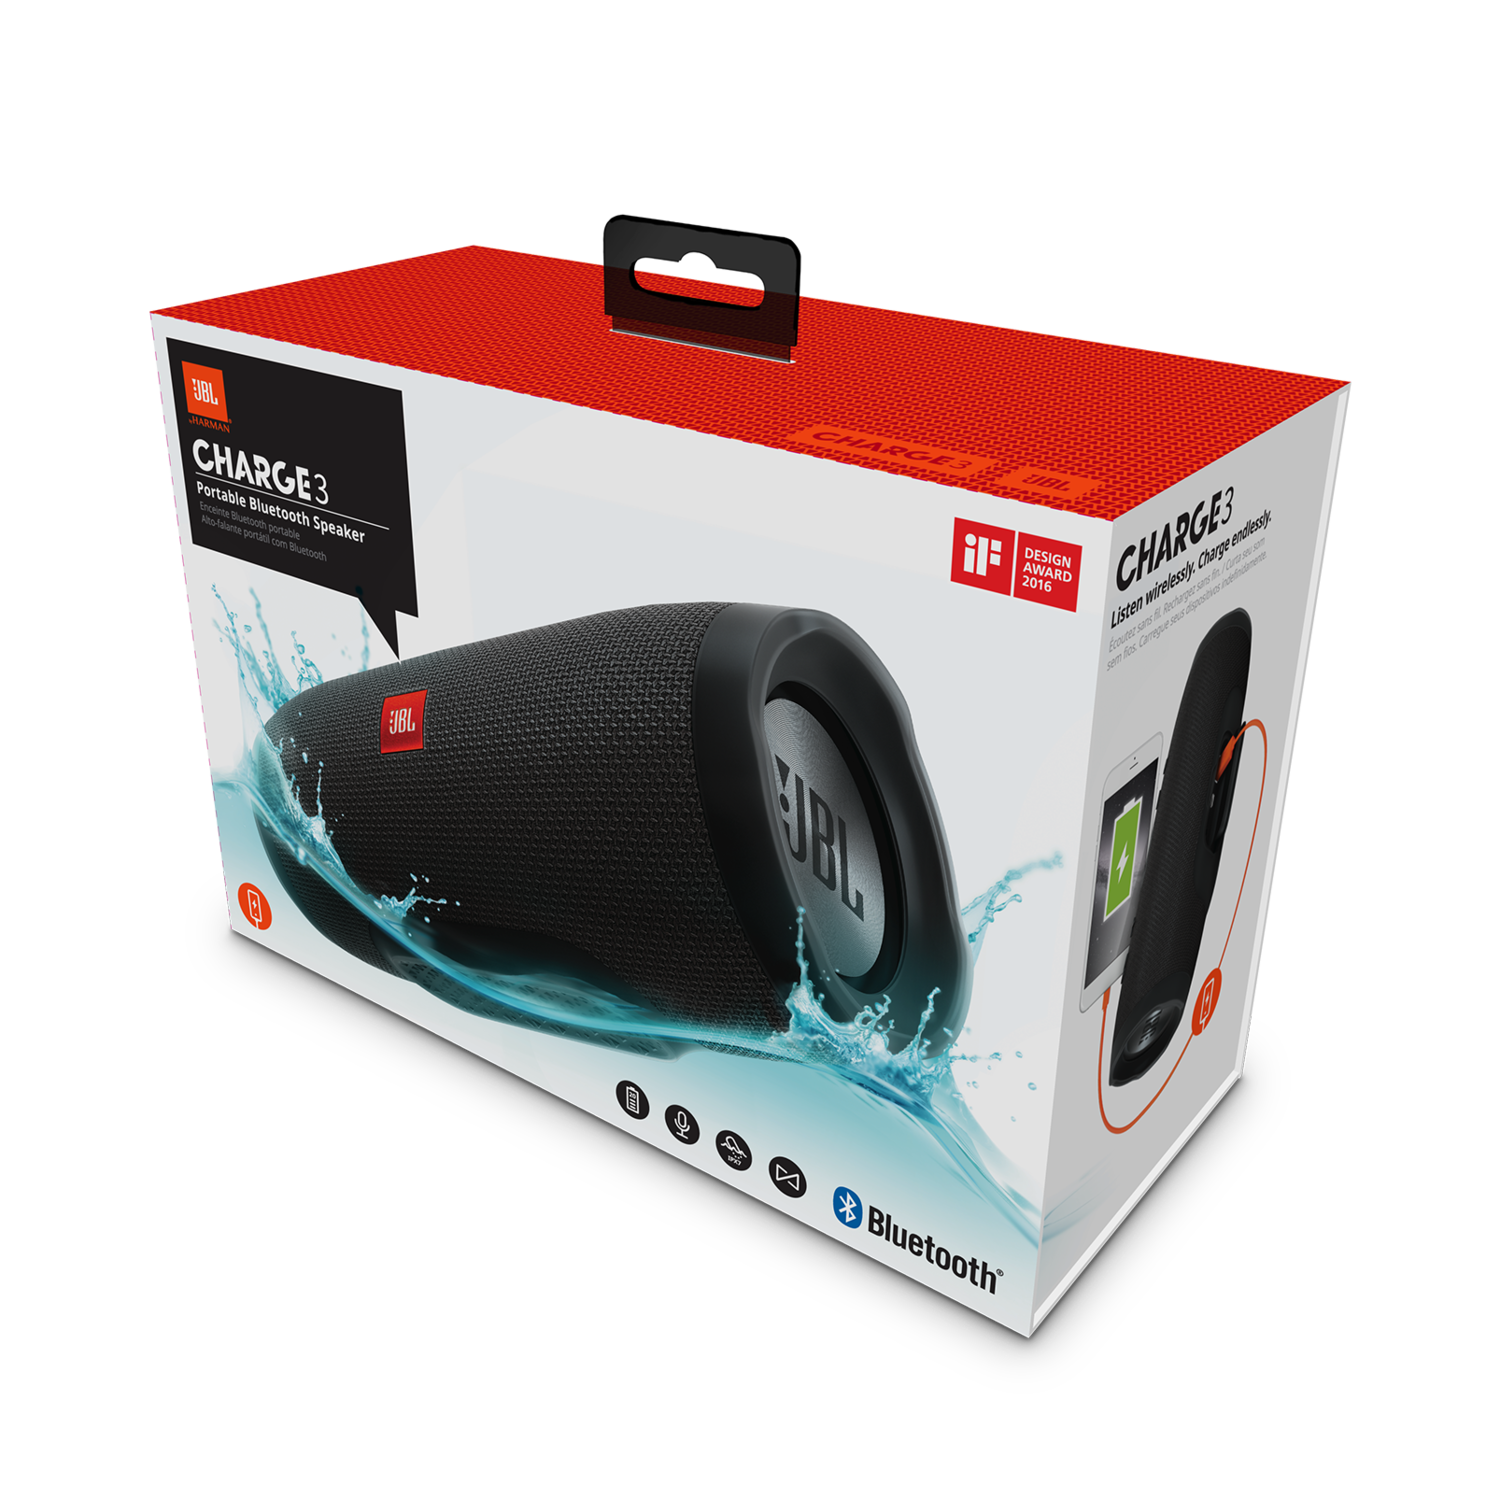 Jbl Charge 3 Limited Military Edition Portable Bluetooth Speaker